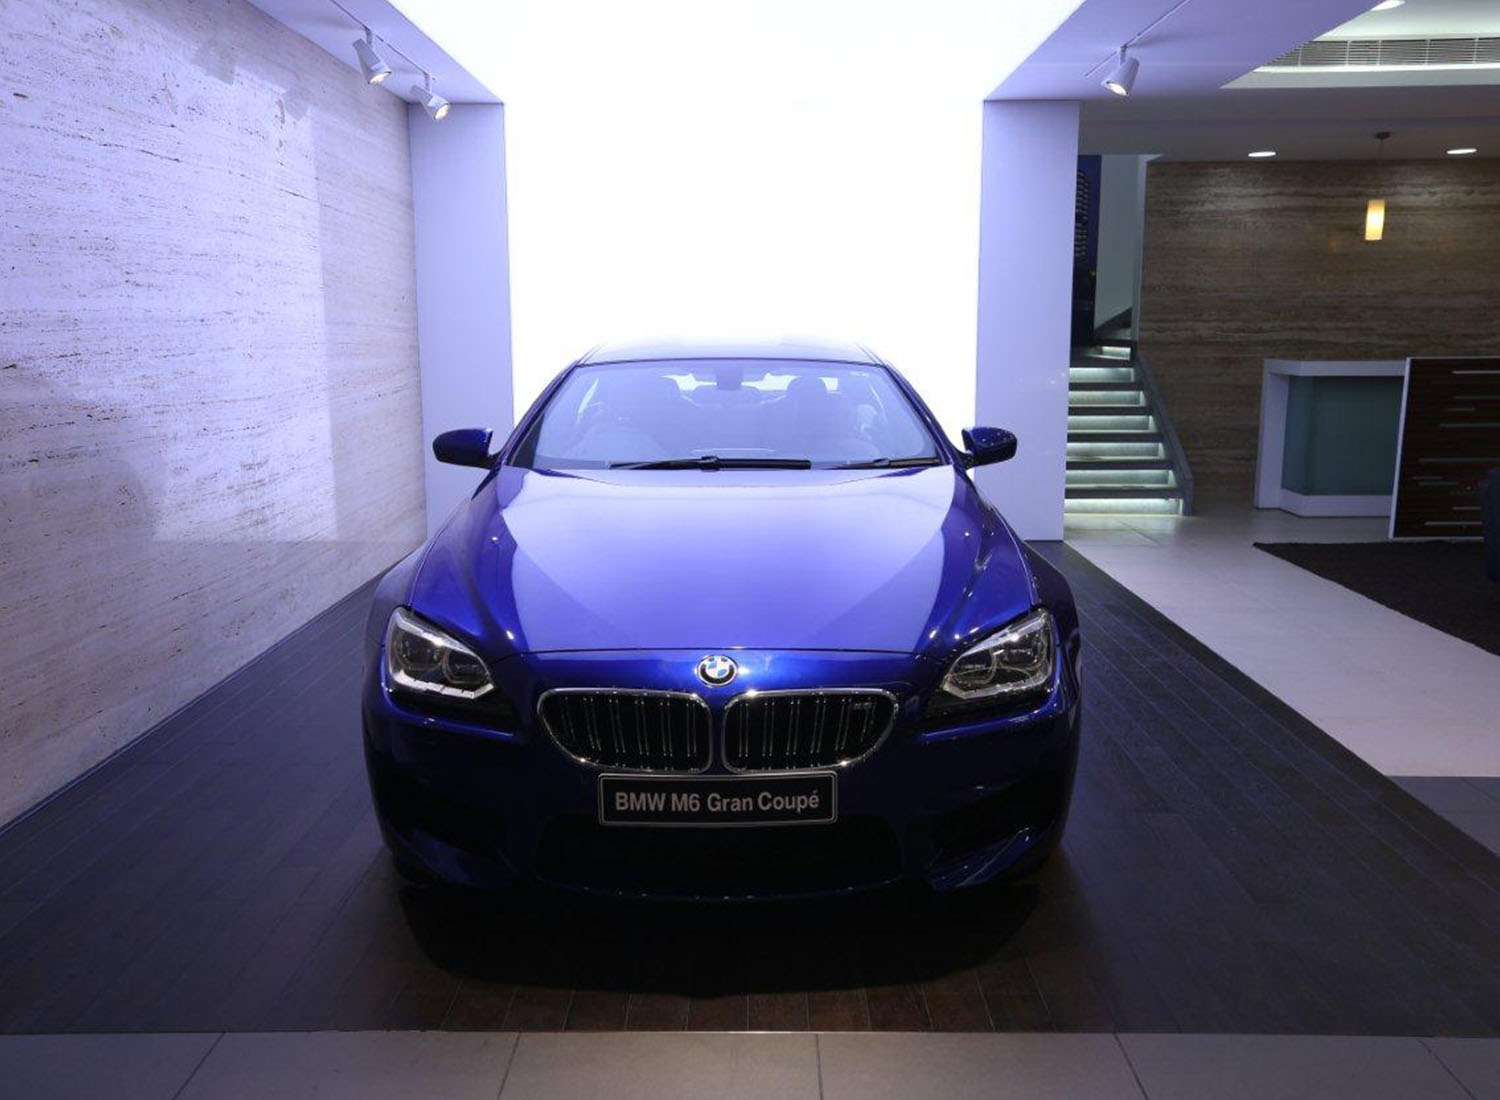 BMW - Stretch Ceiling  Translucent with Backlighting in Showroom - Showroom